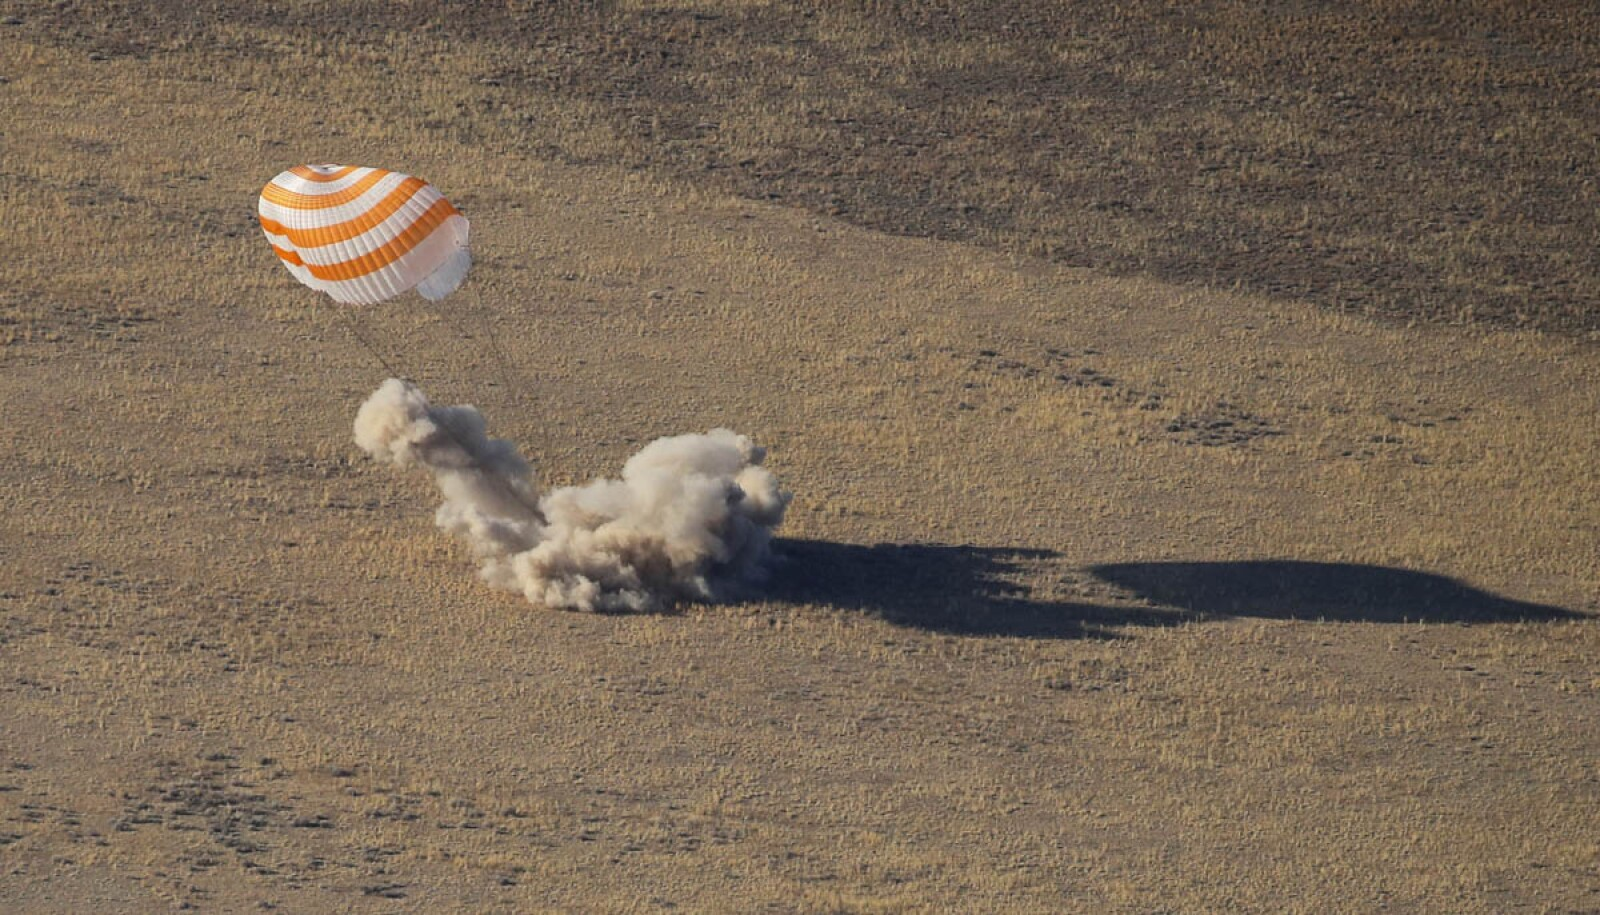 Russian Soyuz MS-12 space capsule lands near Zhezkazgan